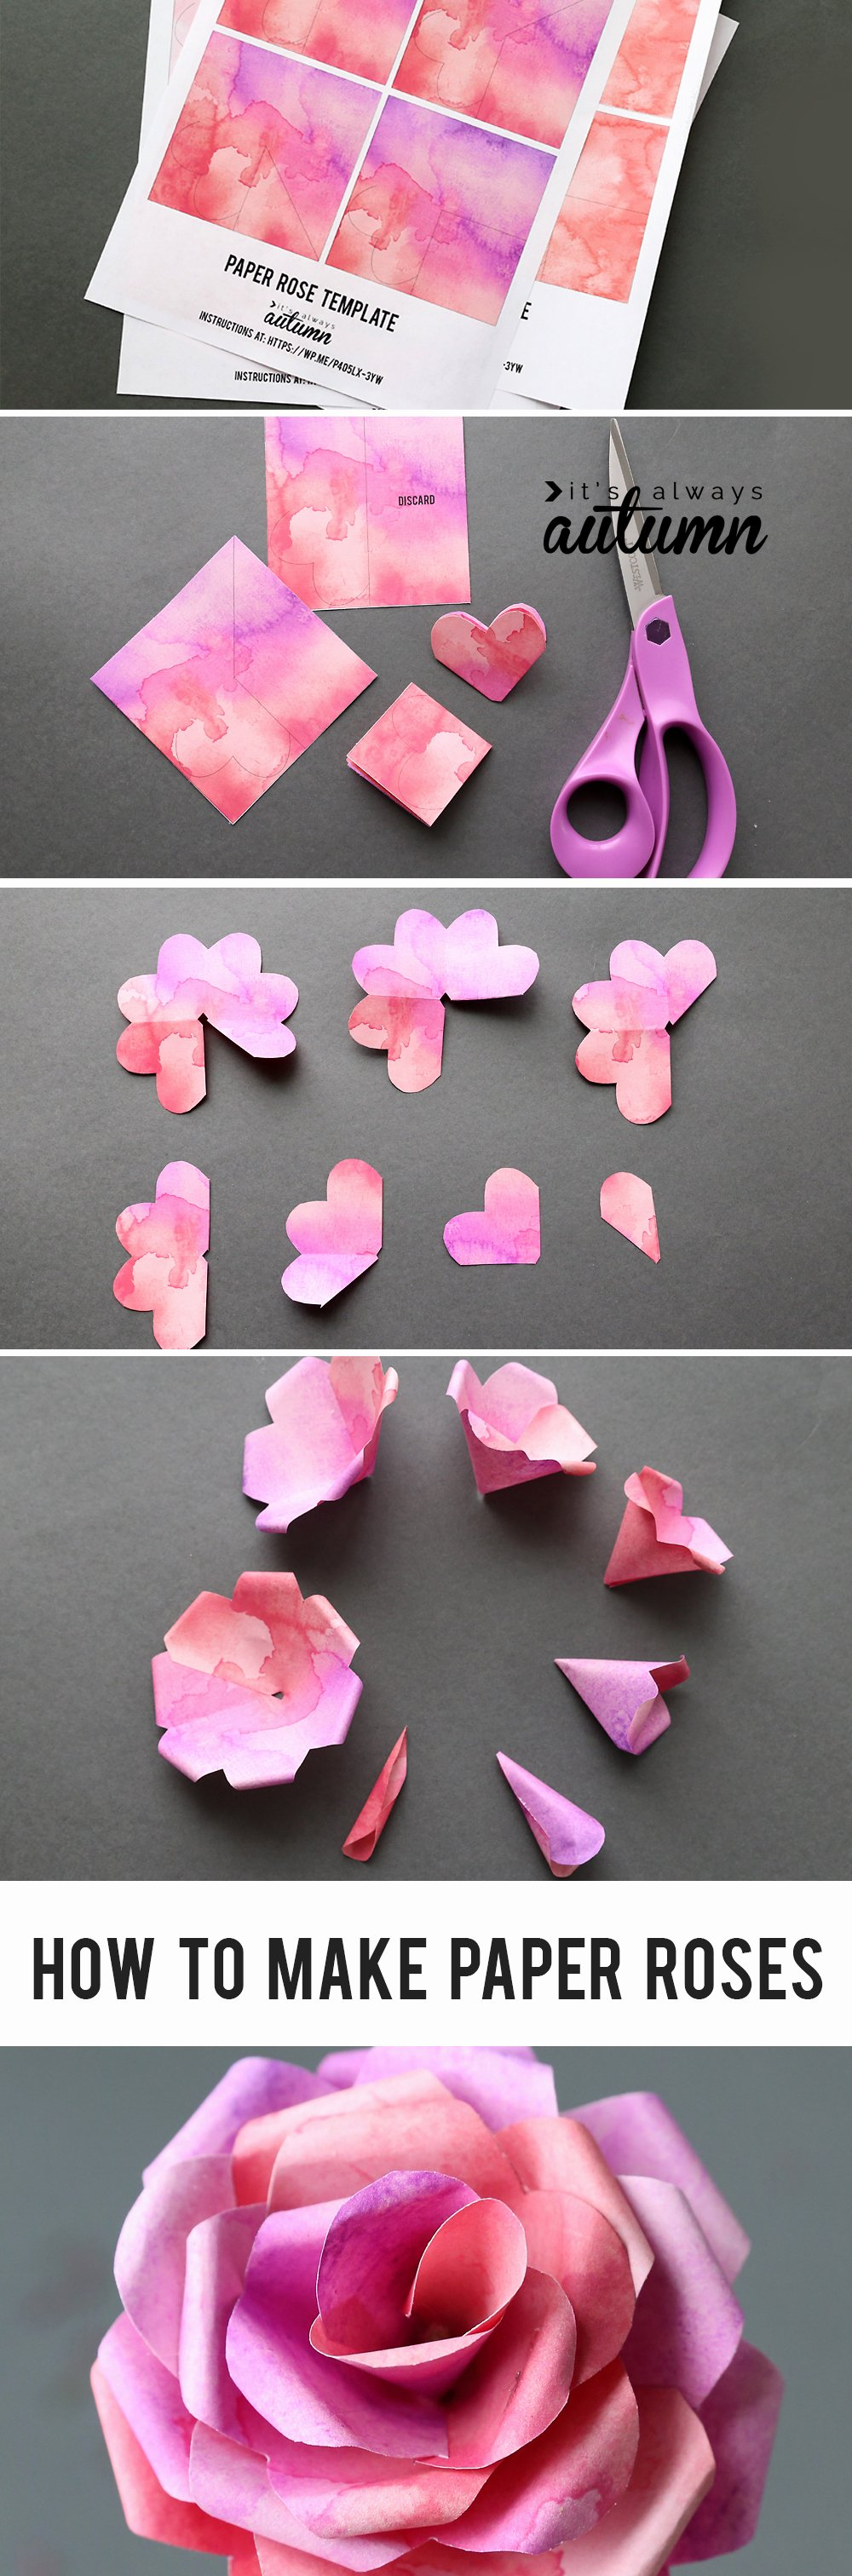 Printable Paper Flower Templates Lovely Make Gorgeous Paper Roses with This Free Paper Rose